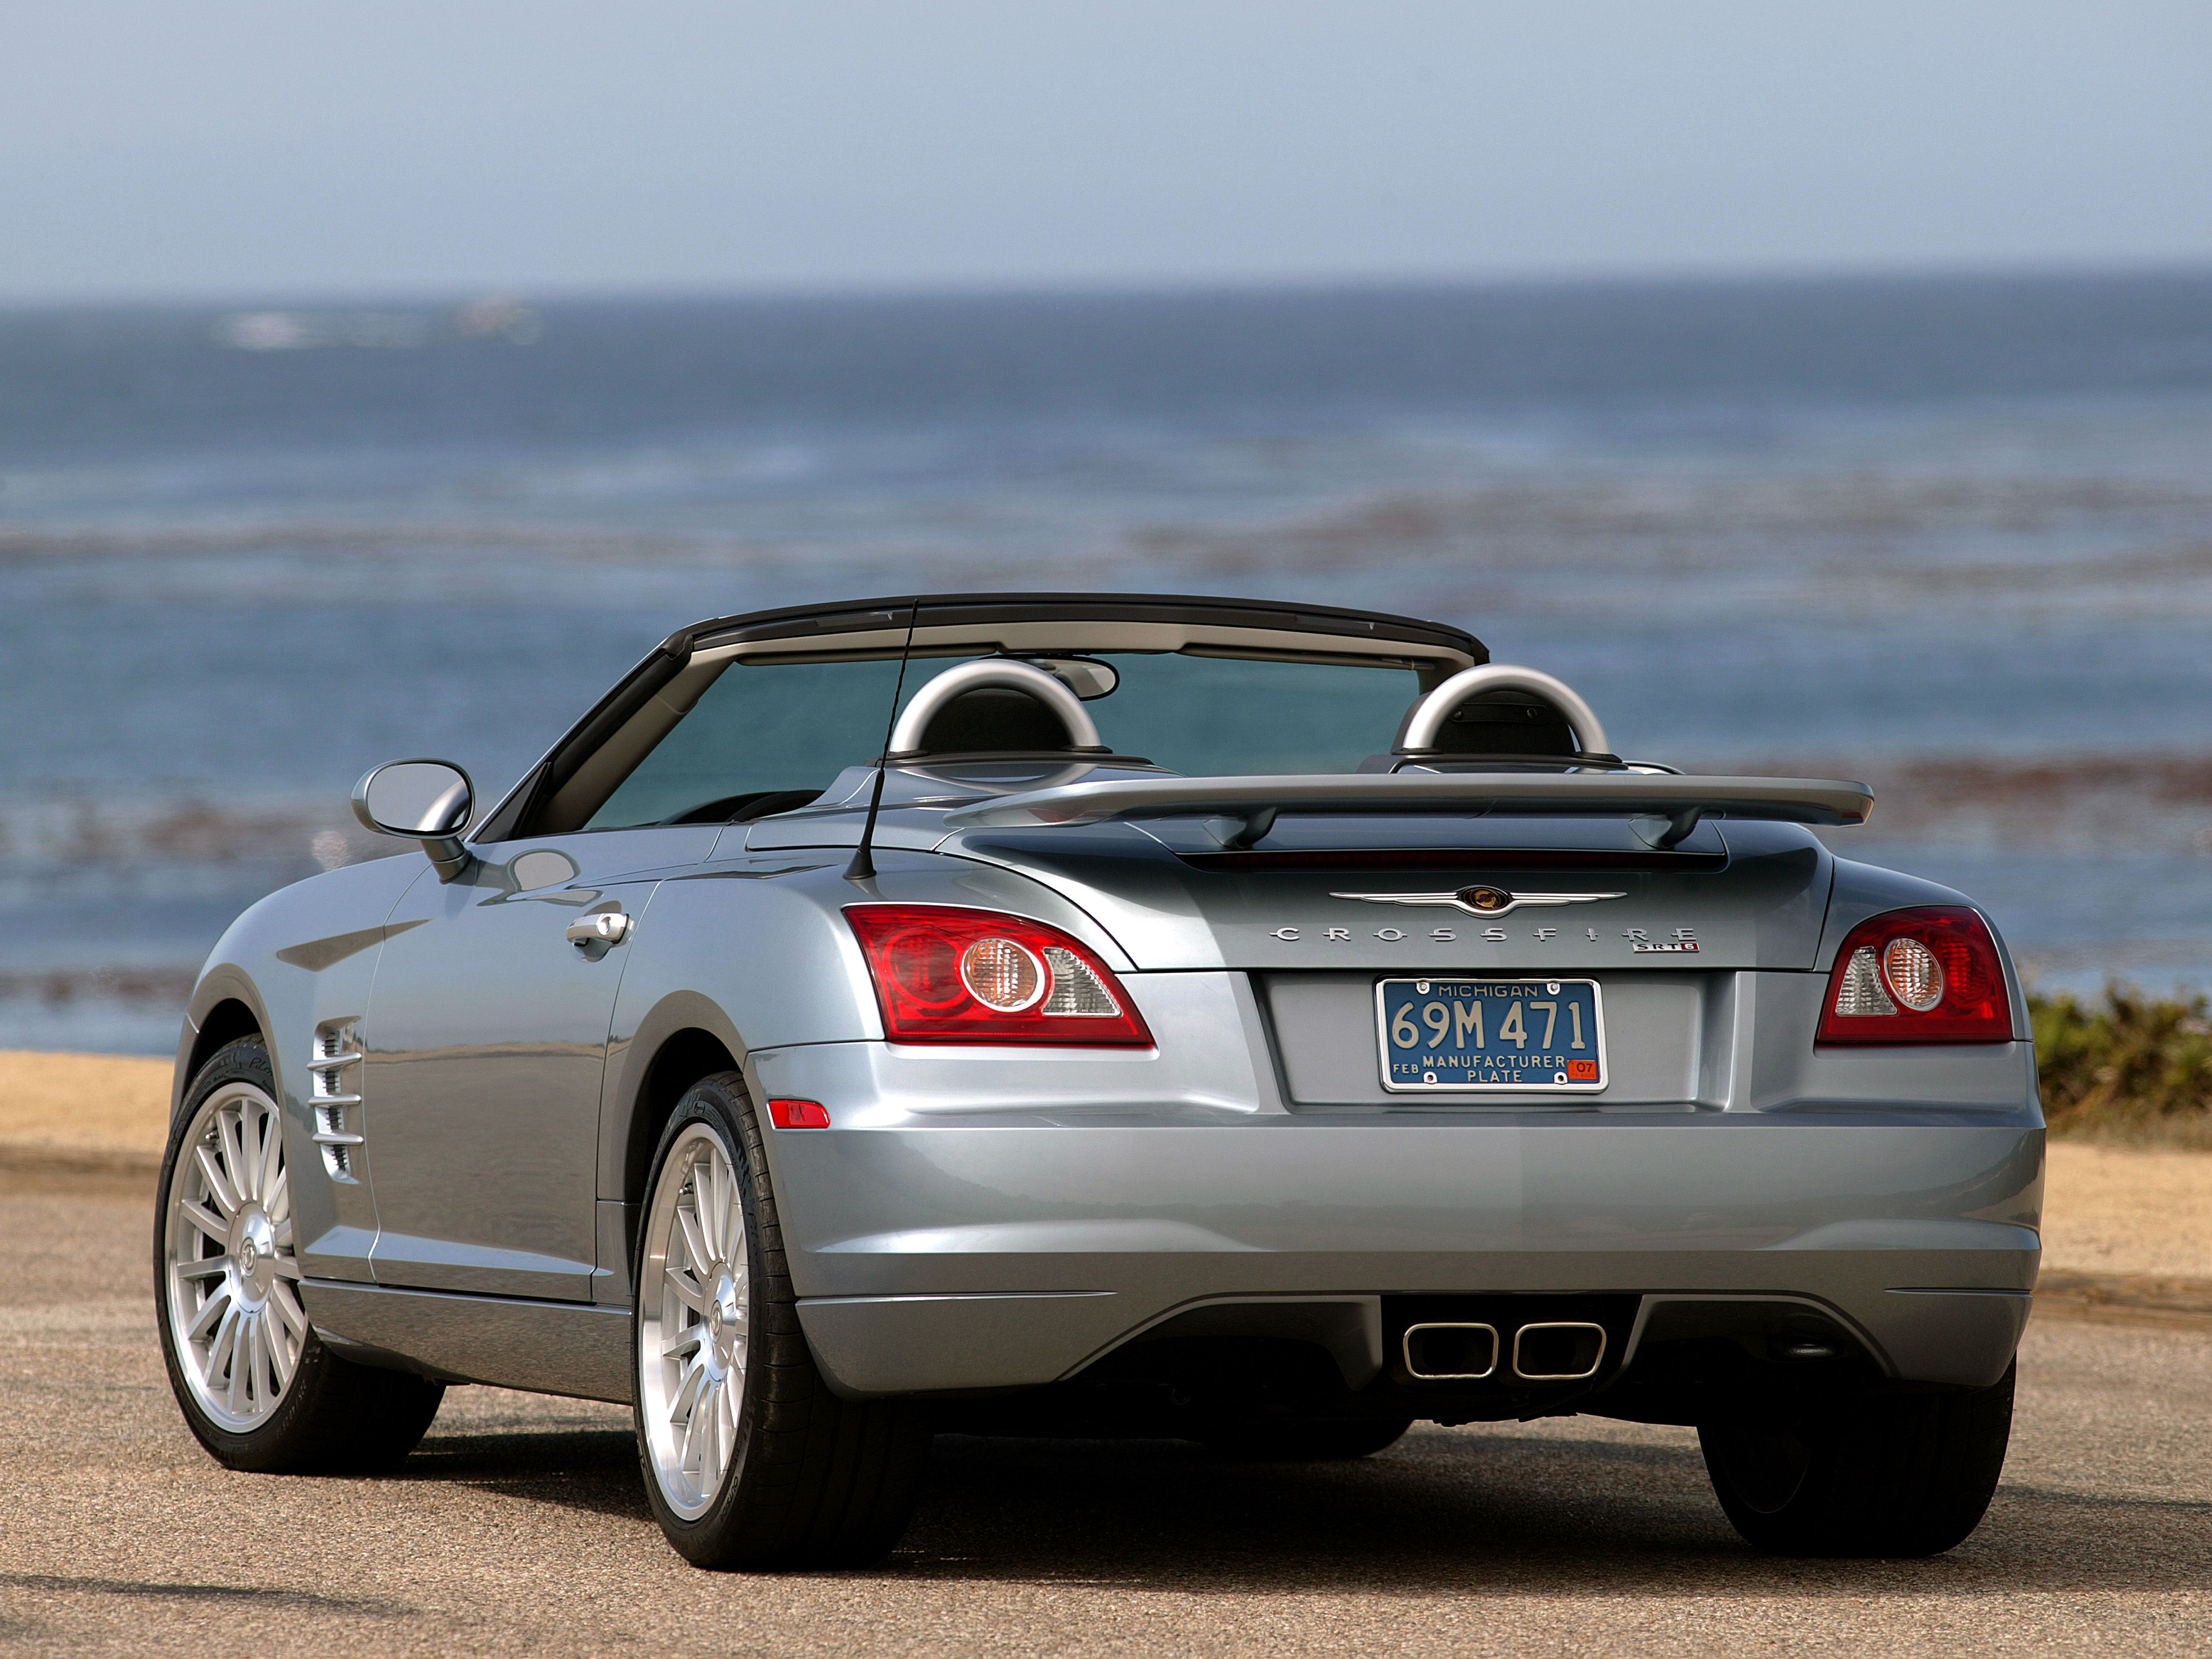 Image Result For Crossfire Srt6 With Images Chrysler Crossfire